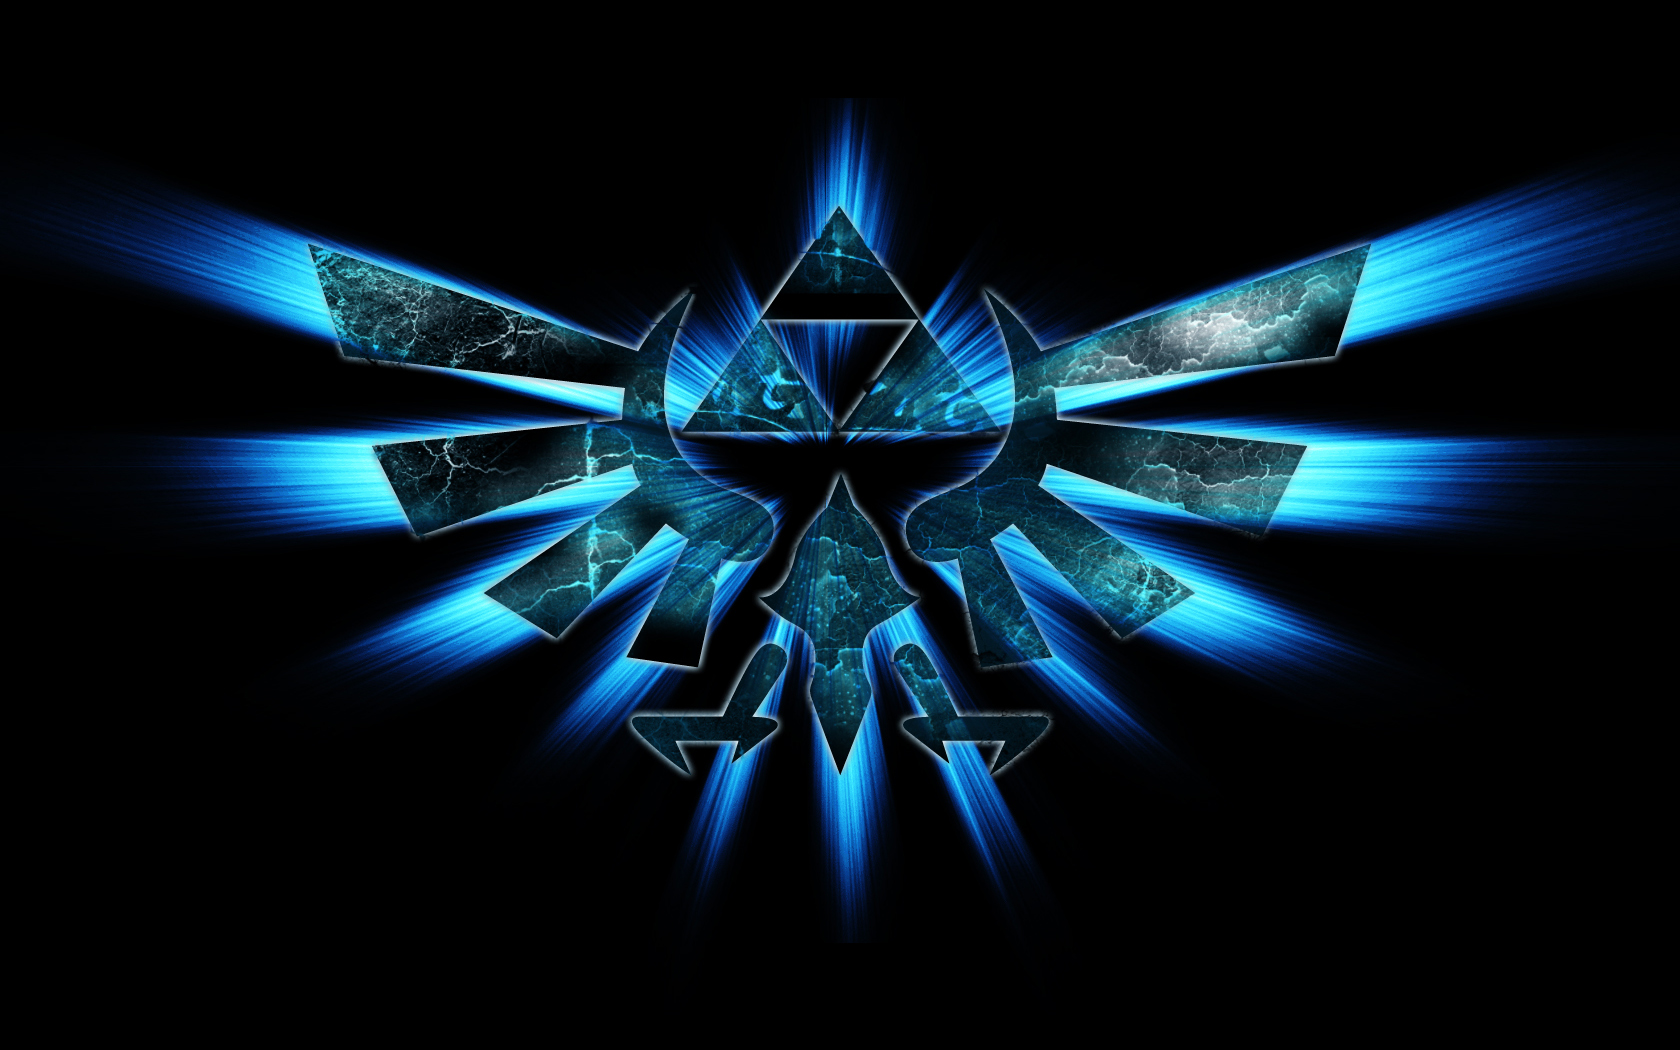 171 The Legend Of Zelda HD Wallpapers | Backgrounds - Wallpaper Abyss